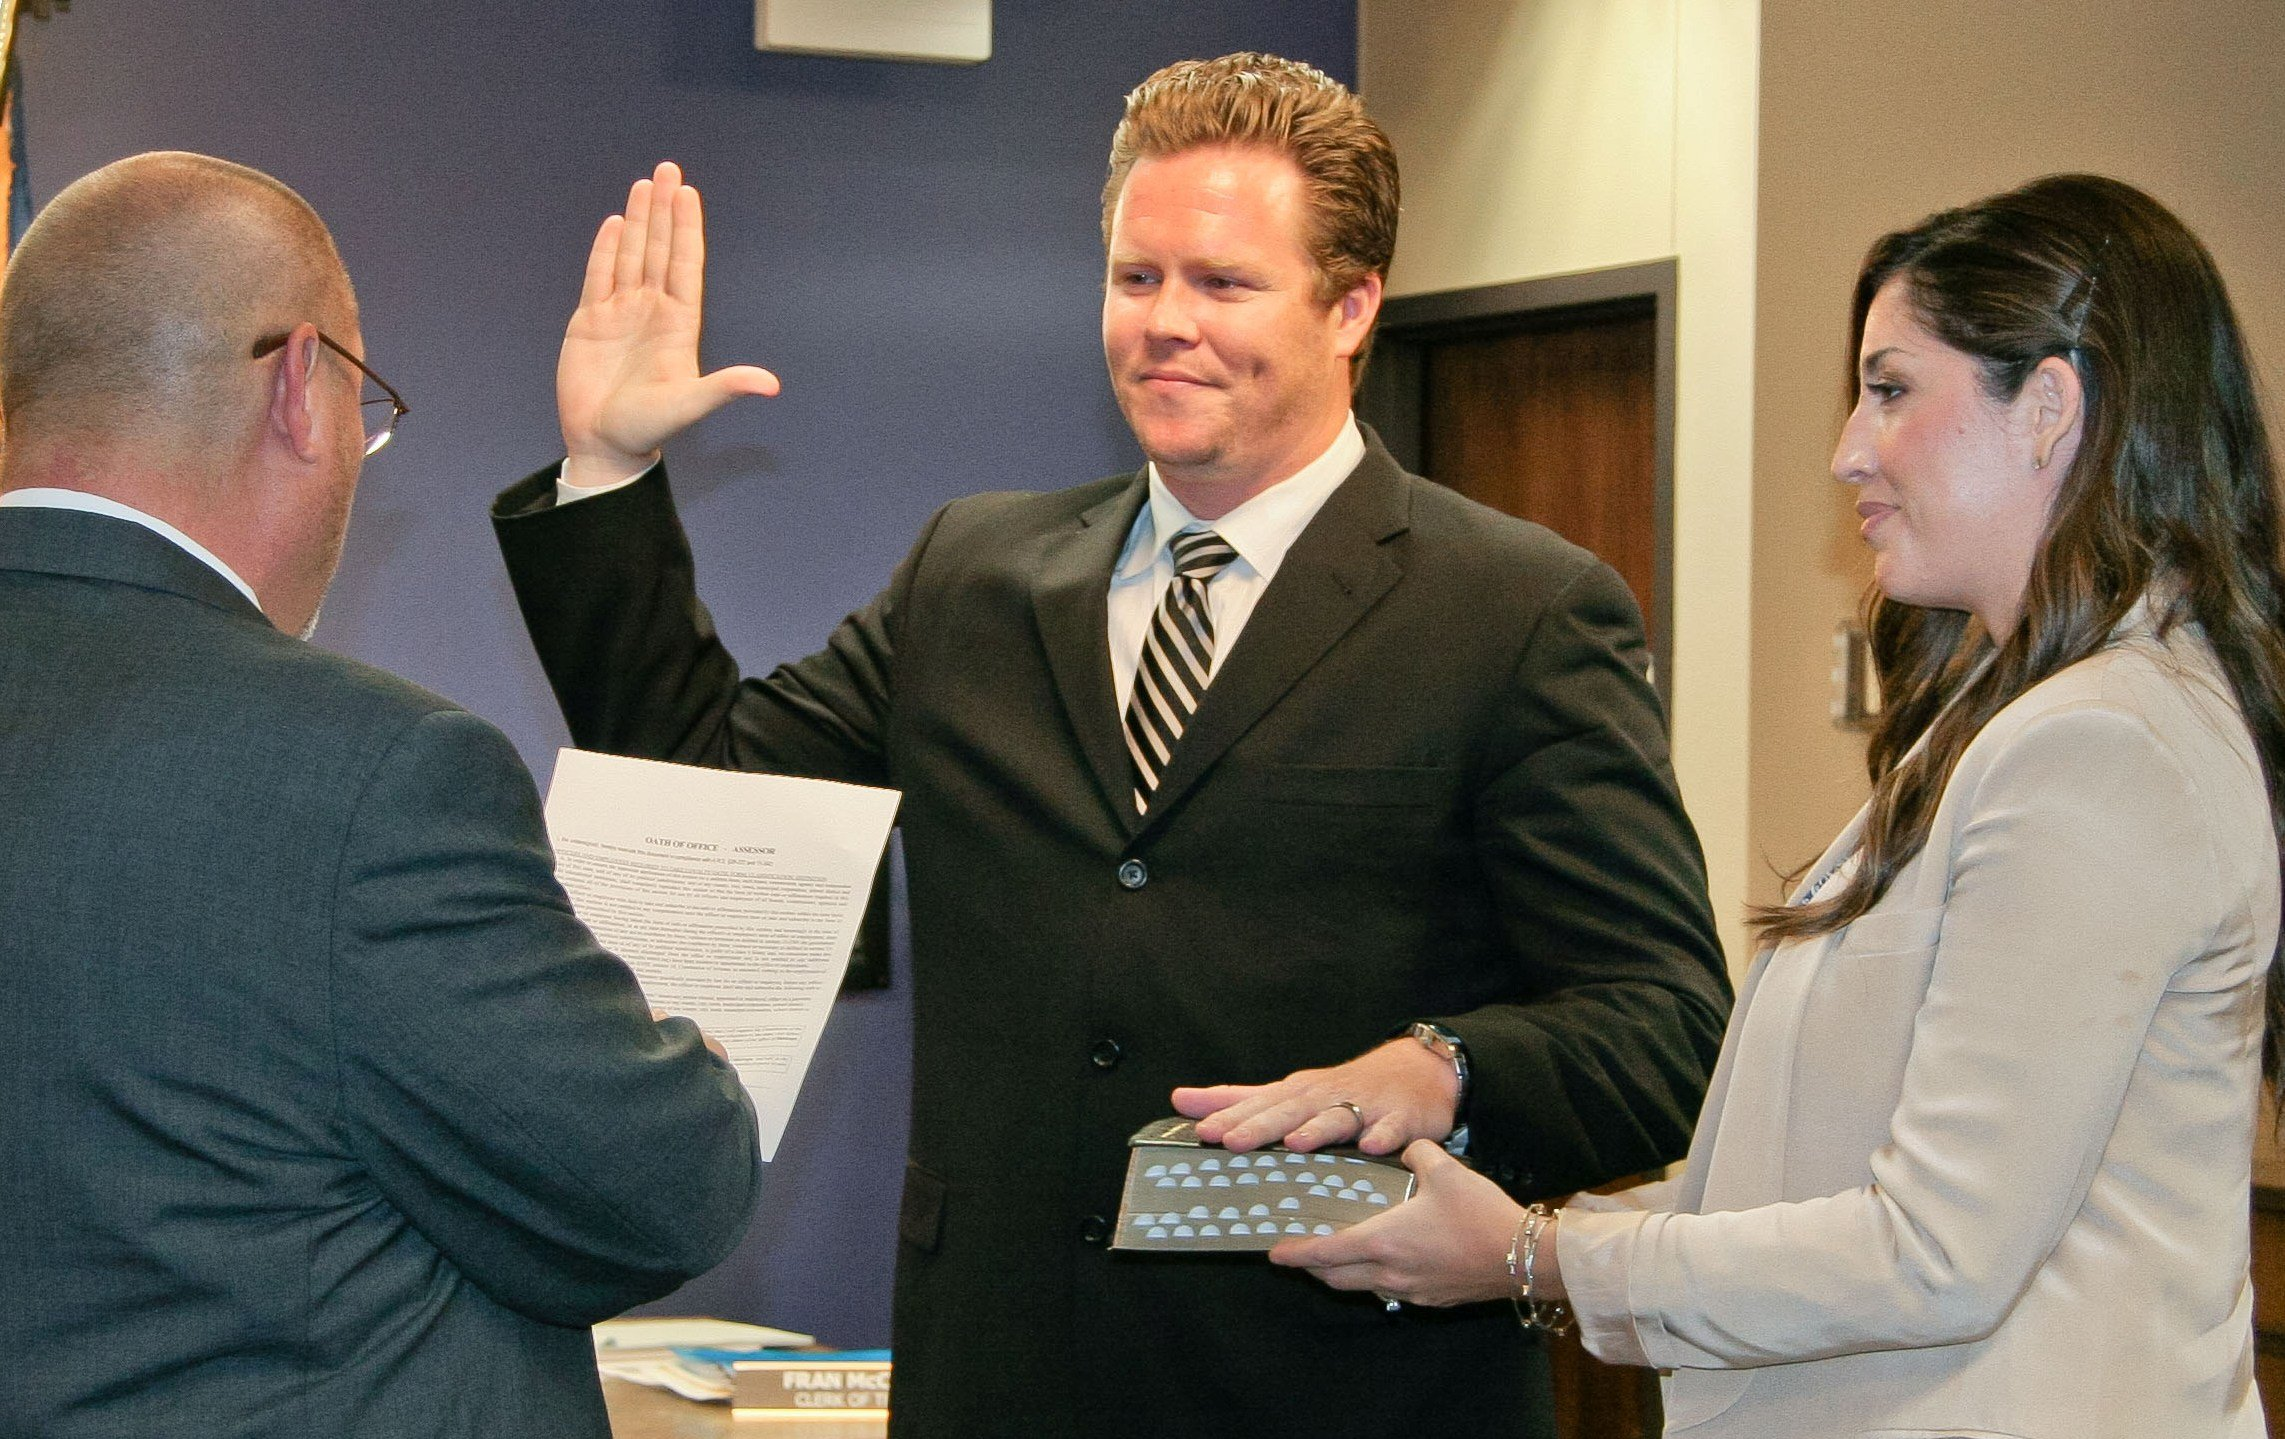 Former assessor and Justice of the Peace Keith Russell administering the Oath of Office on Aug. 19 to Paul Petersen. Also shown is Paul's wife, Raquel. (Source: Maricopa County Board of Supervisors)